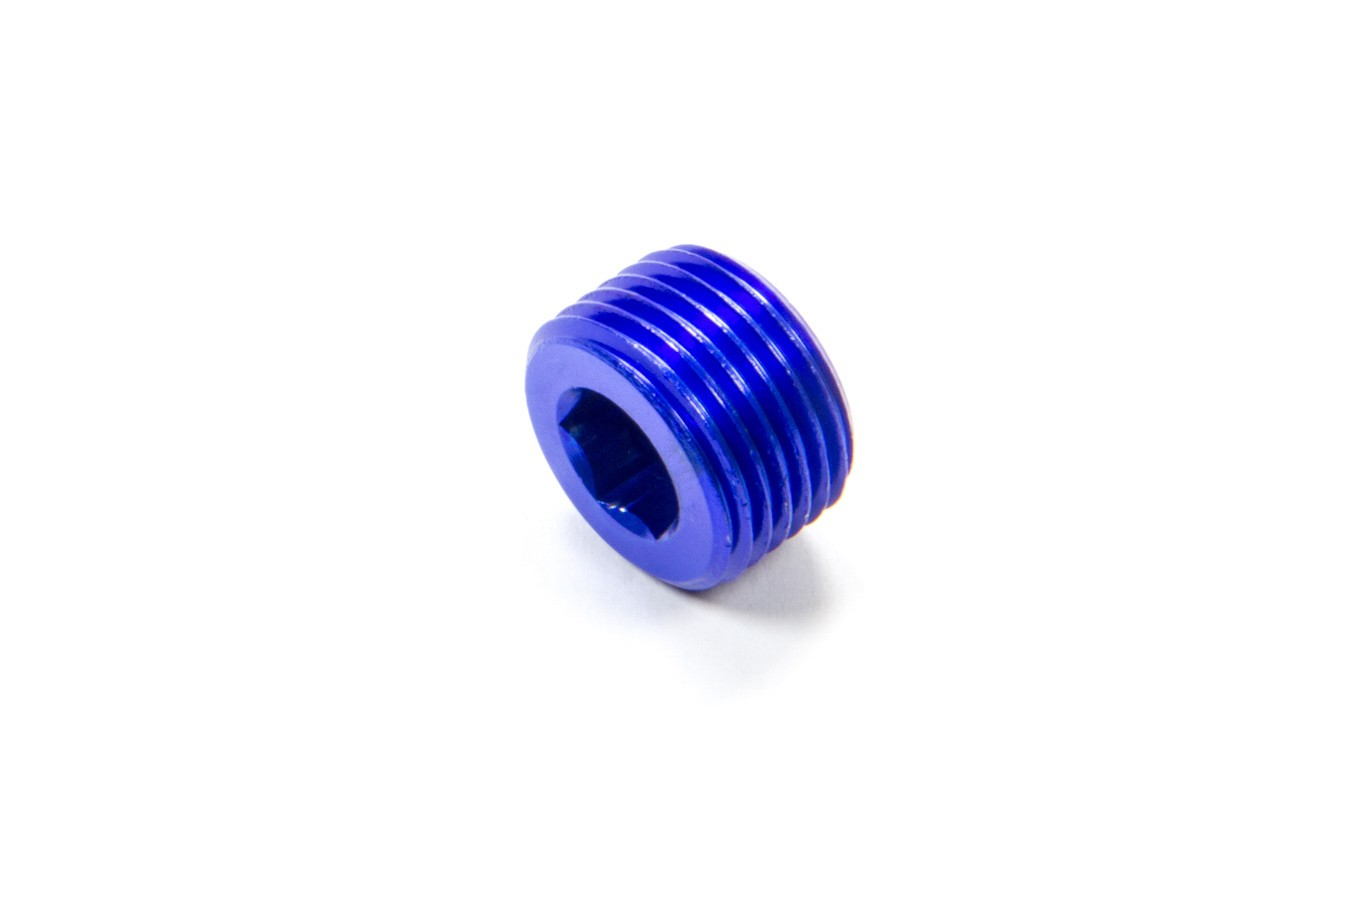 Fragola 493204 Fitting, Plug, 3/8 in NPT, Allen Head, Aluminum, Blue Anodize, Each